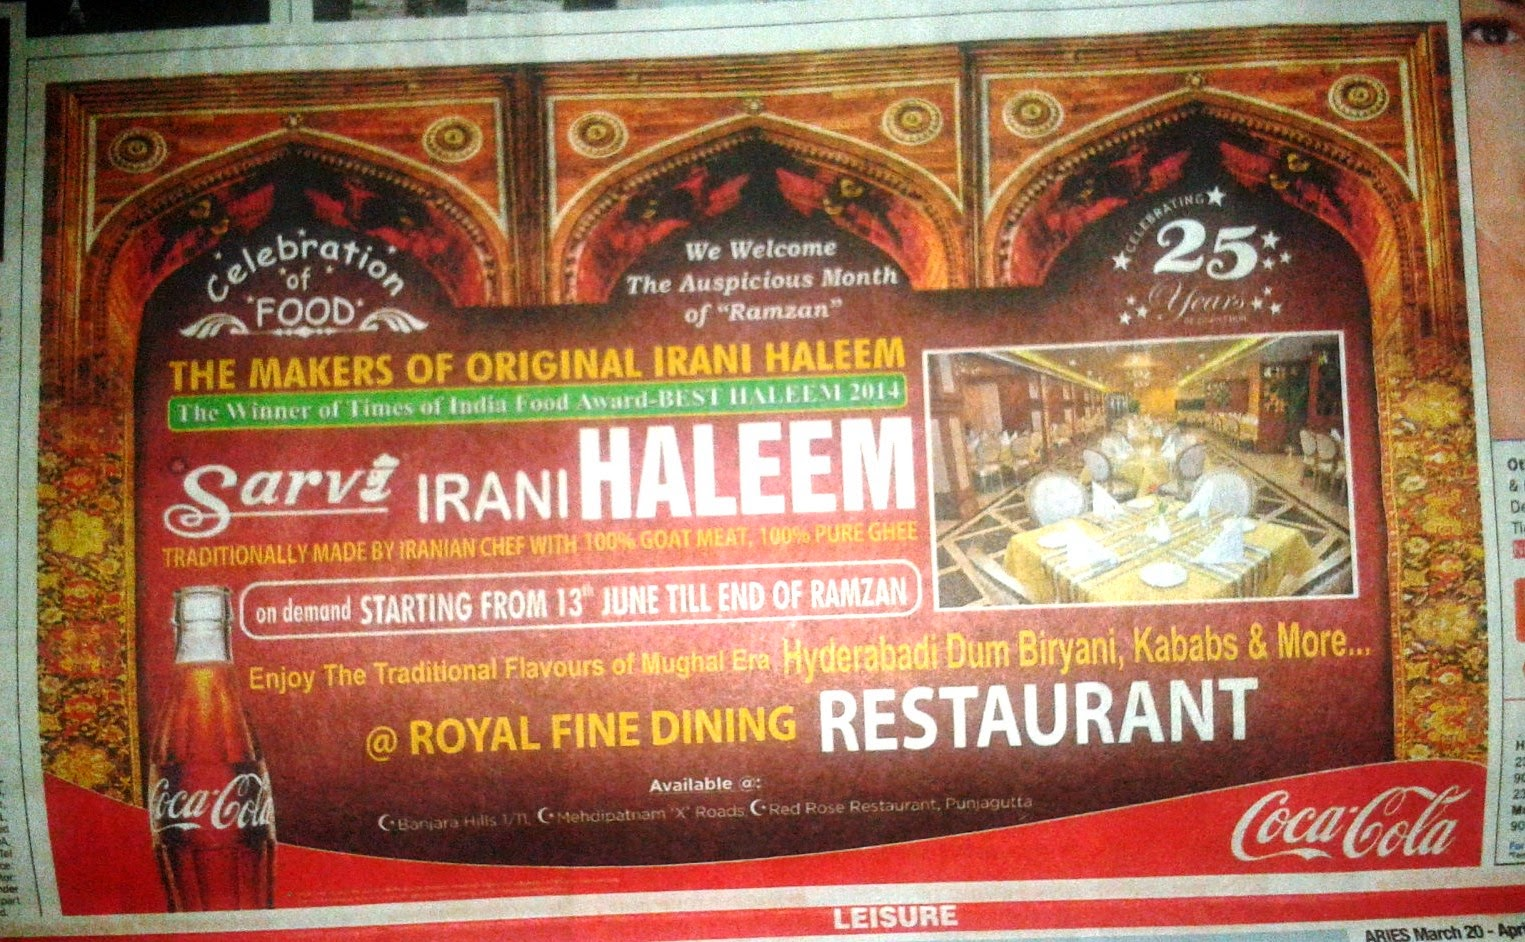 Foodaholix Sarvi haleem advertisement